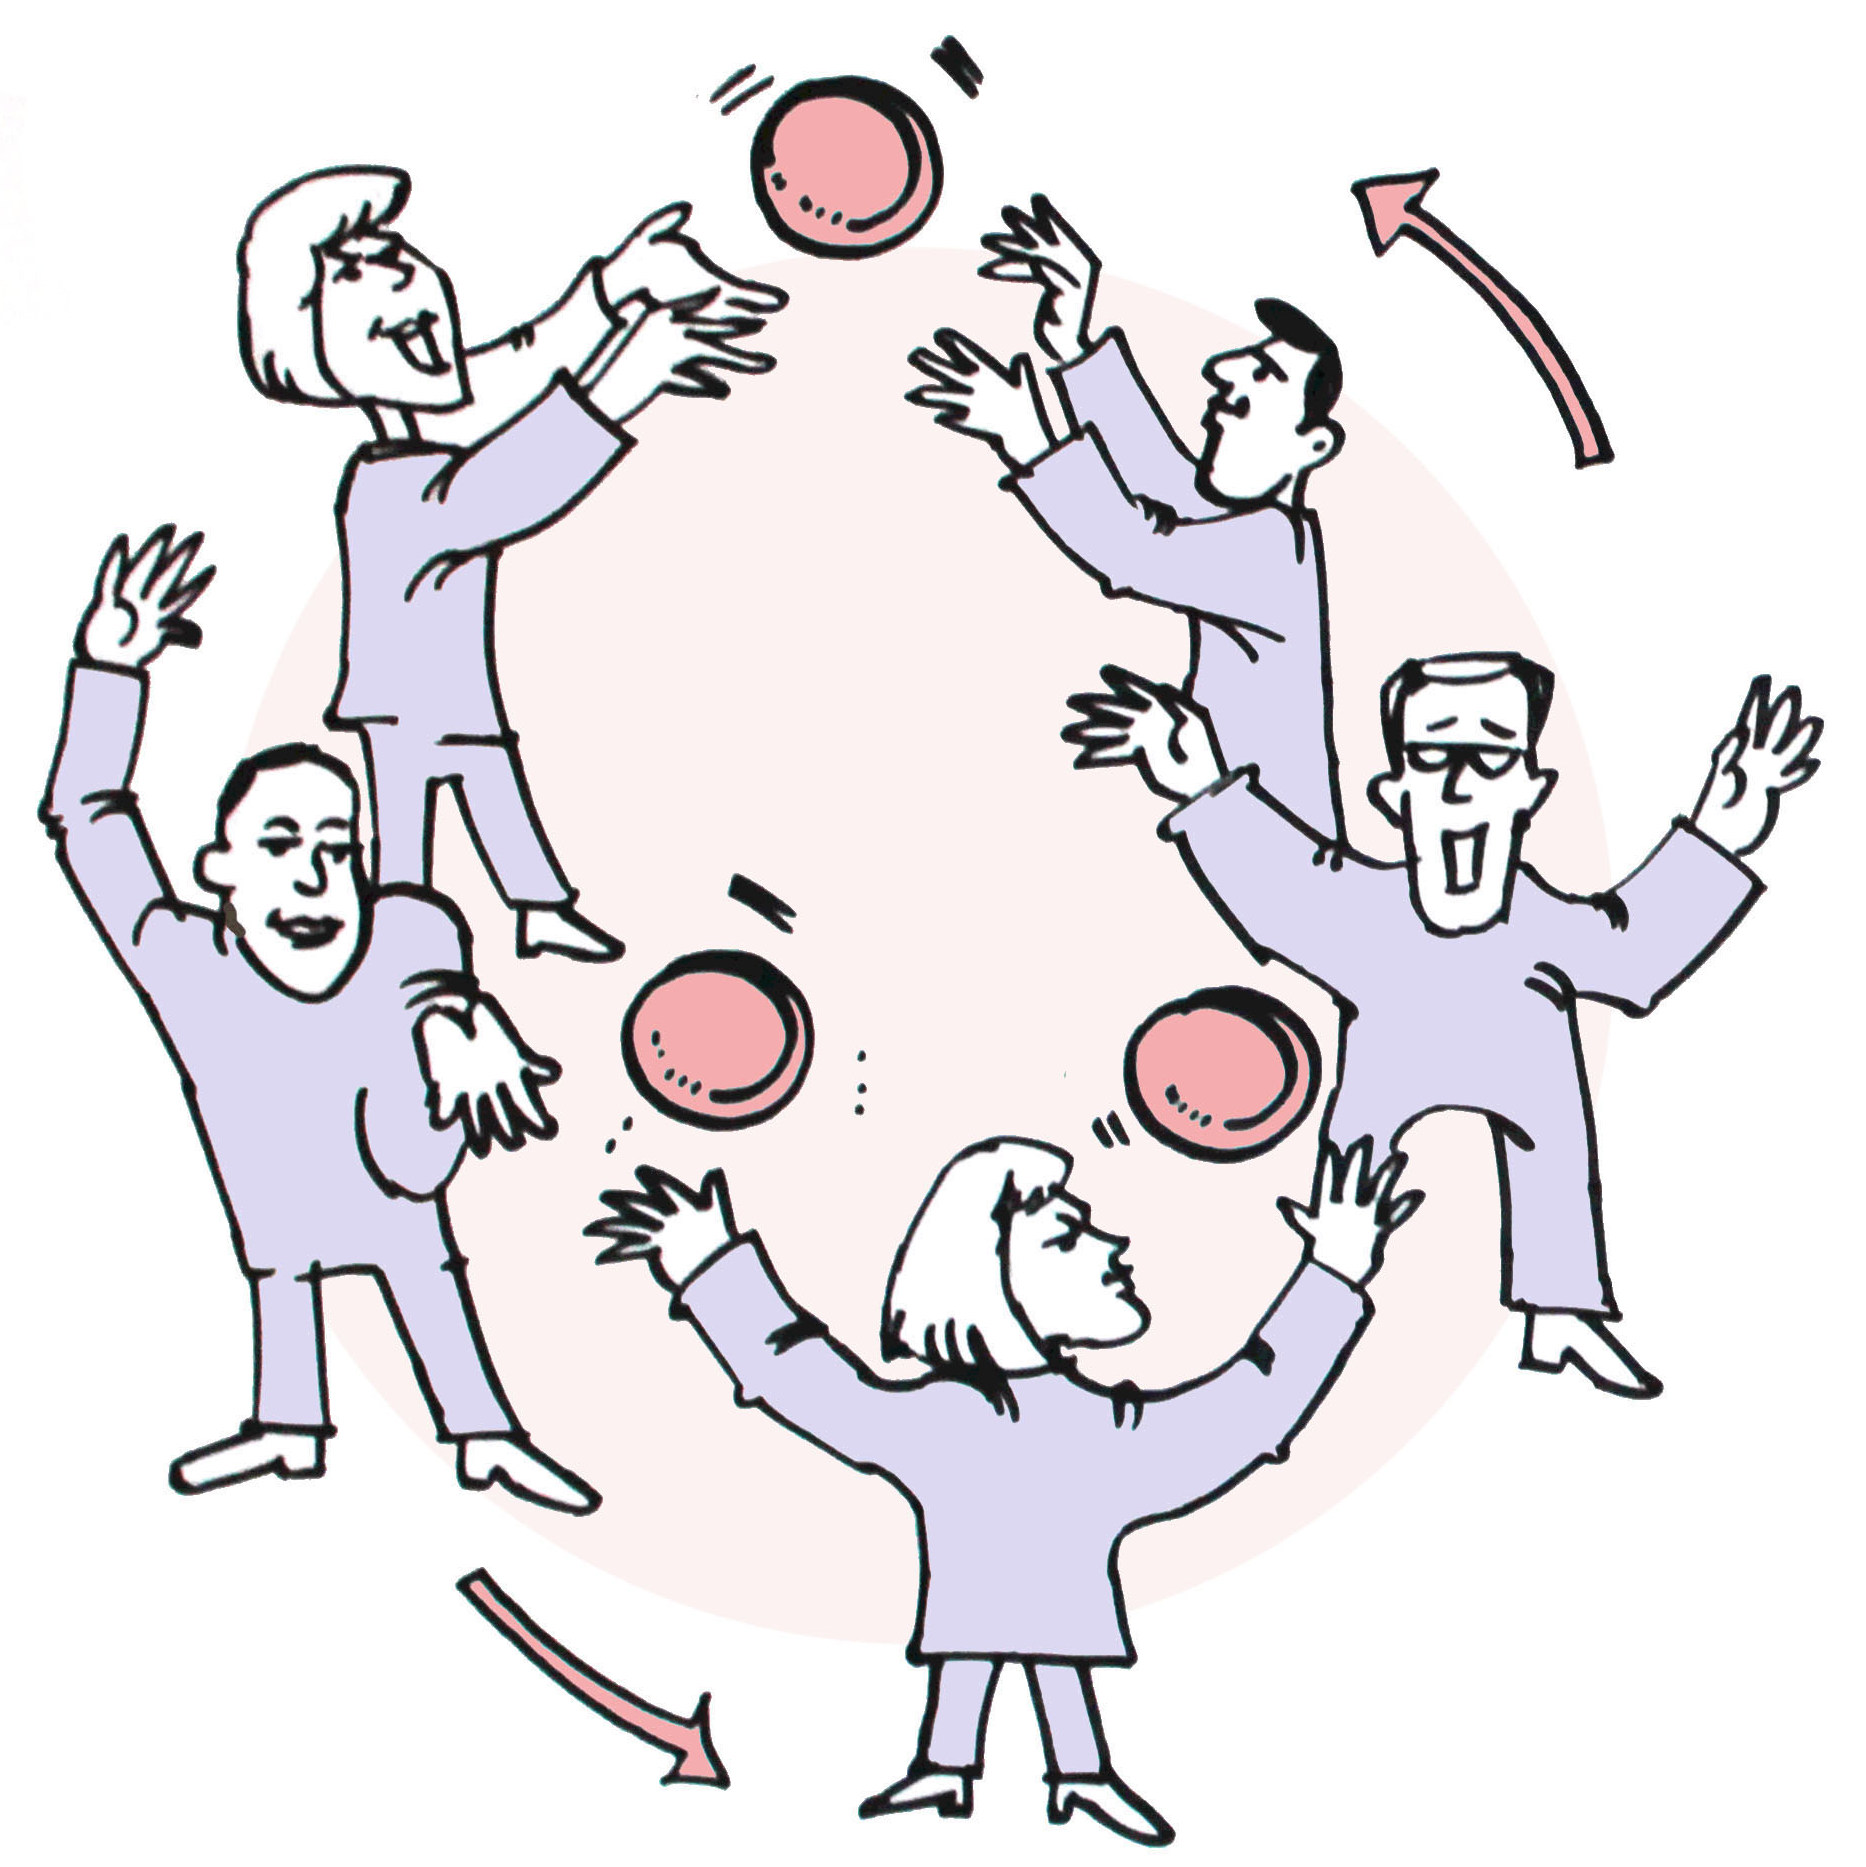 The collaborative and agile pitch team